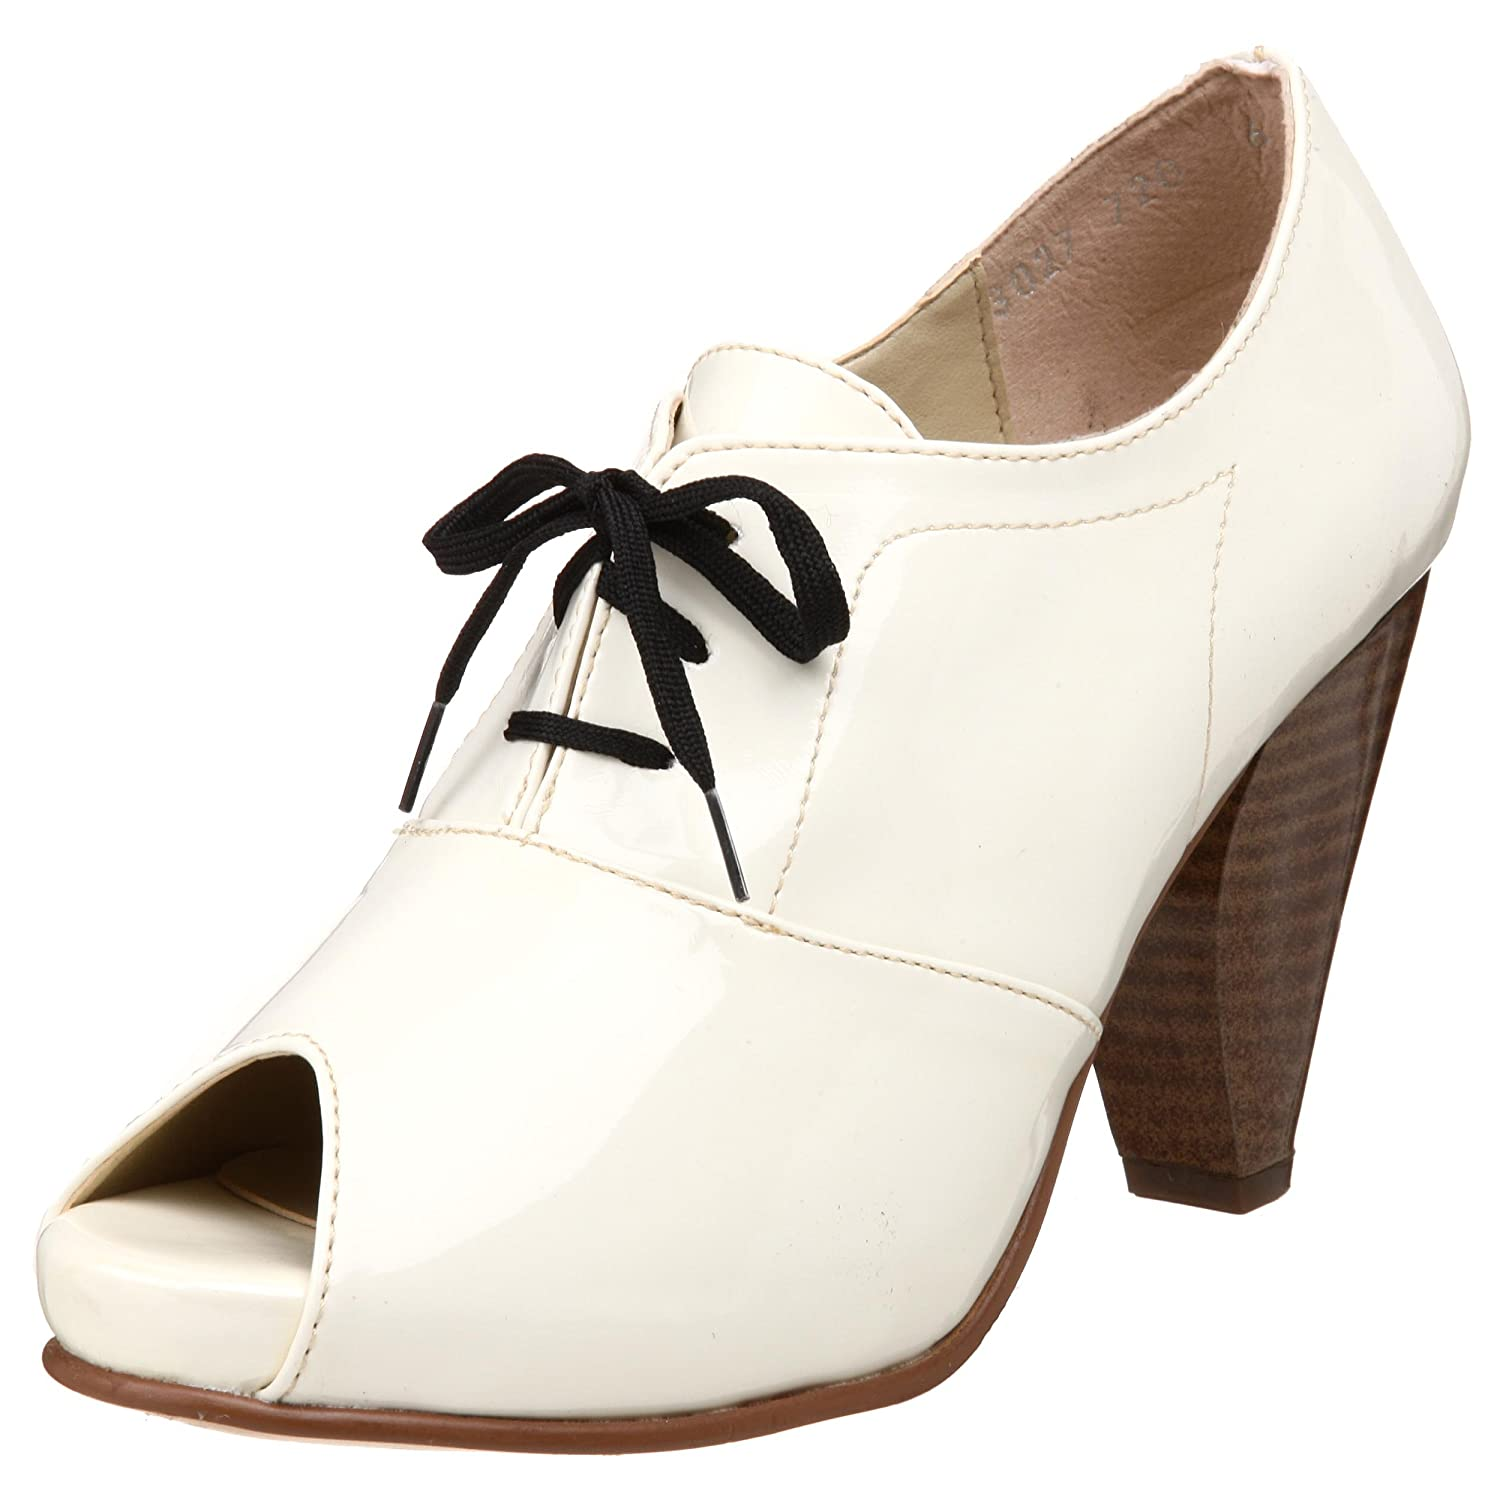 olsenHaus Women's Charm Oxford